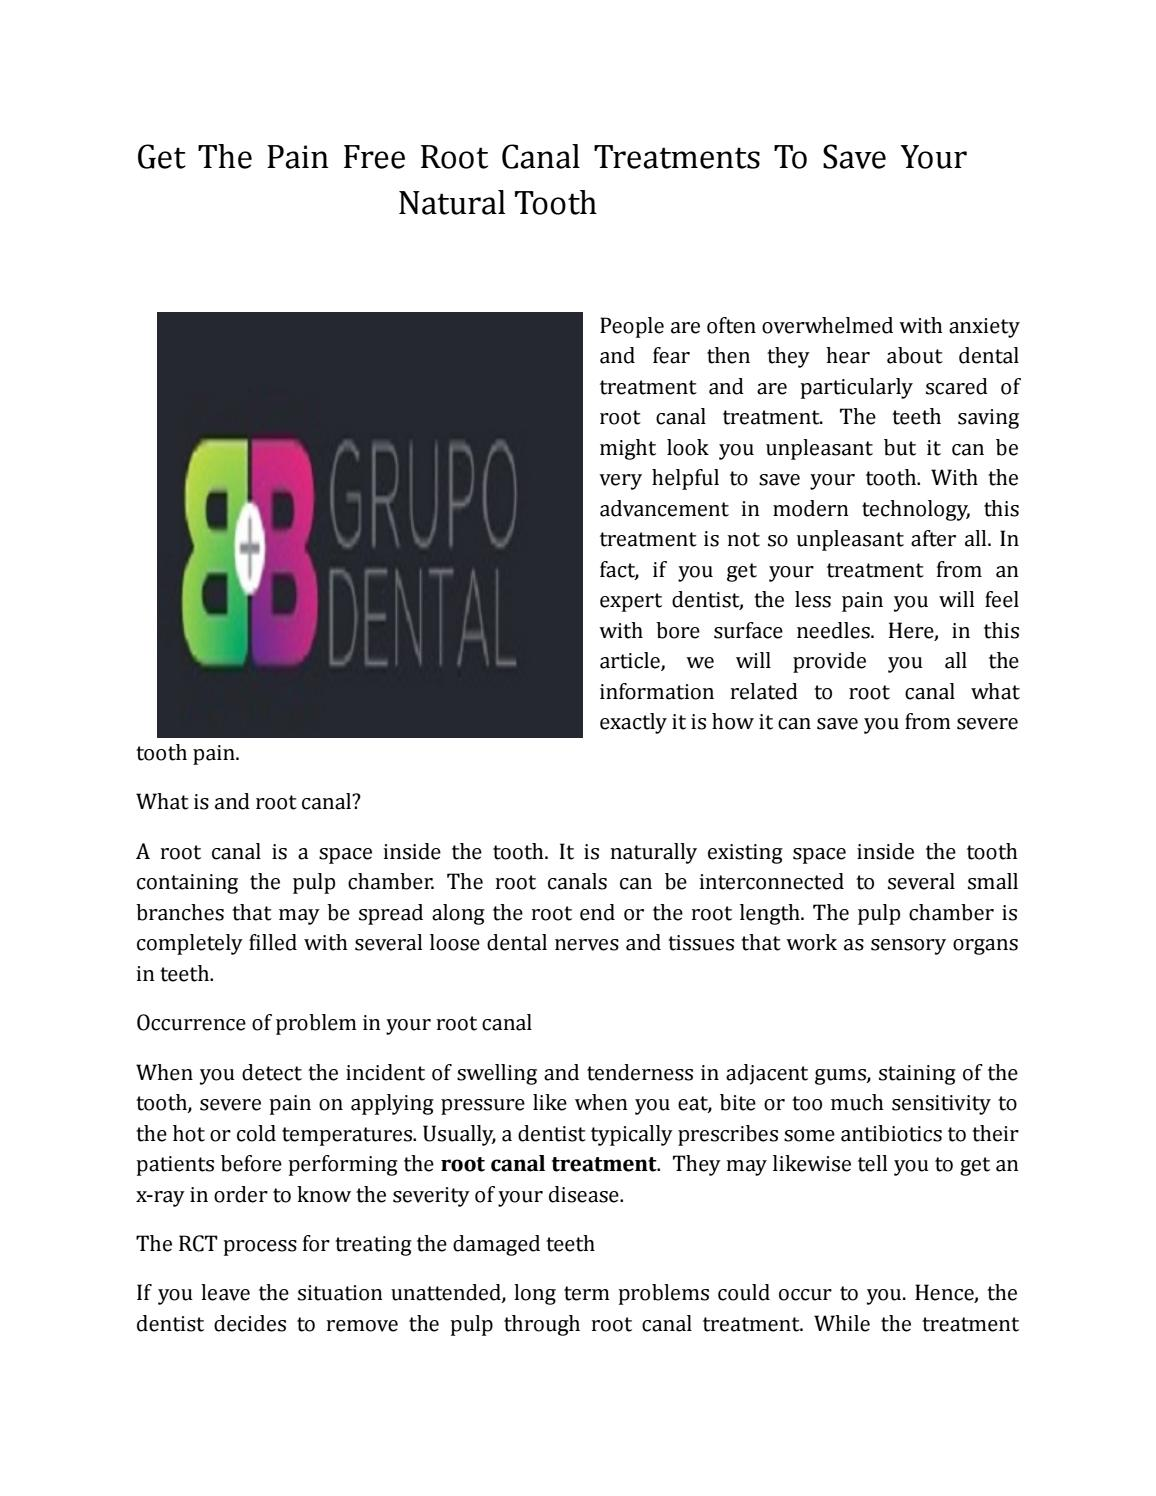 Get The Pain Free Root Canal Treatments To Save Your Natural